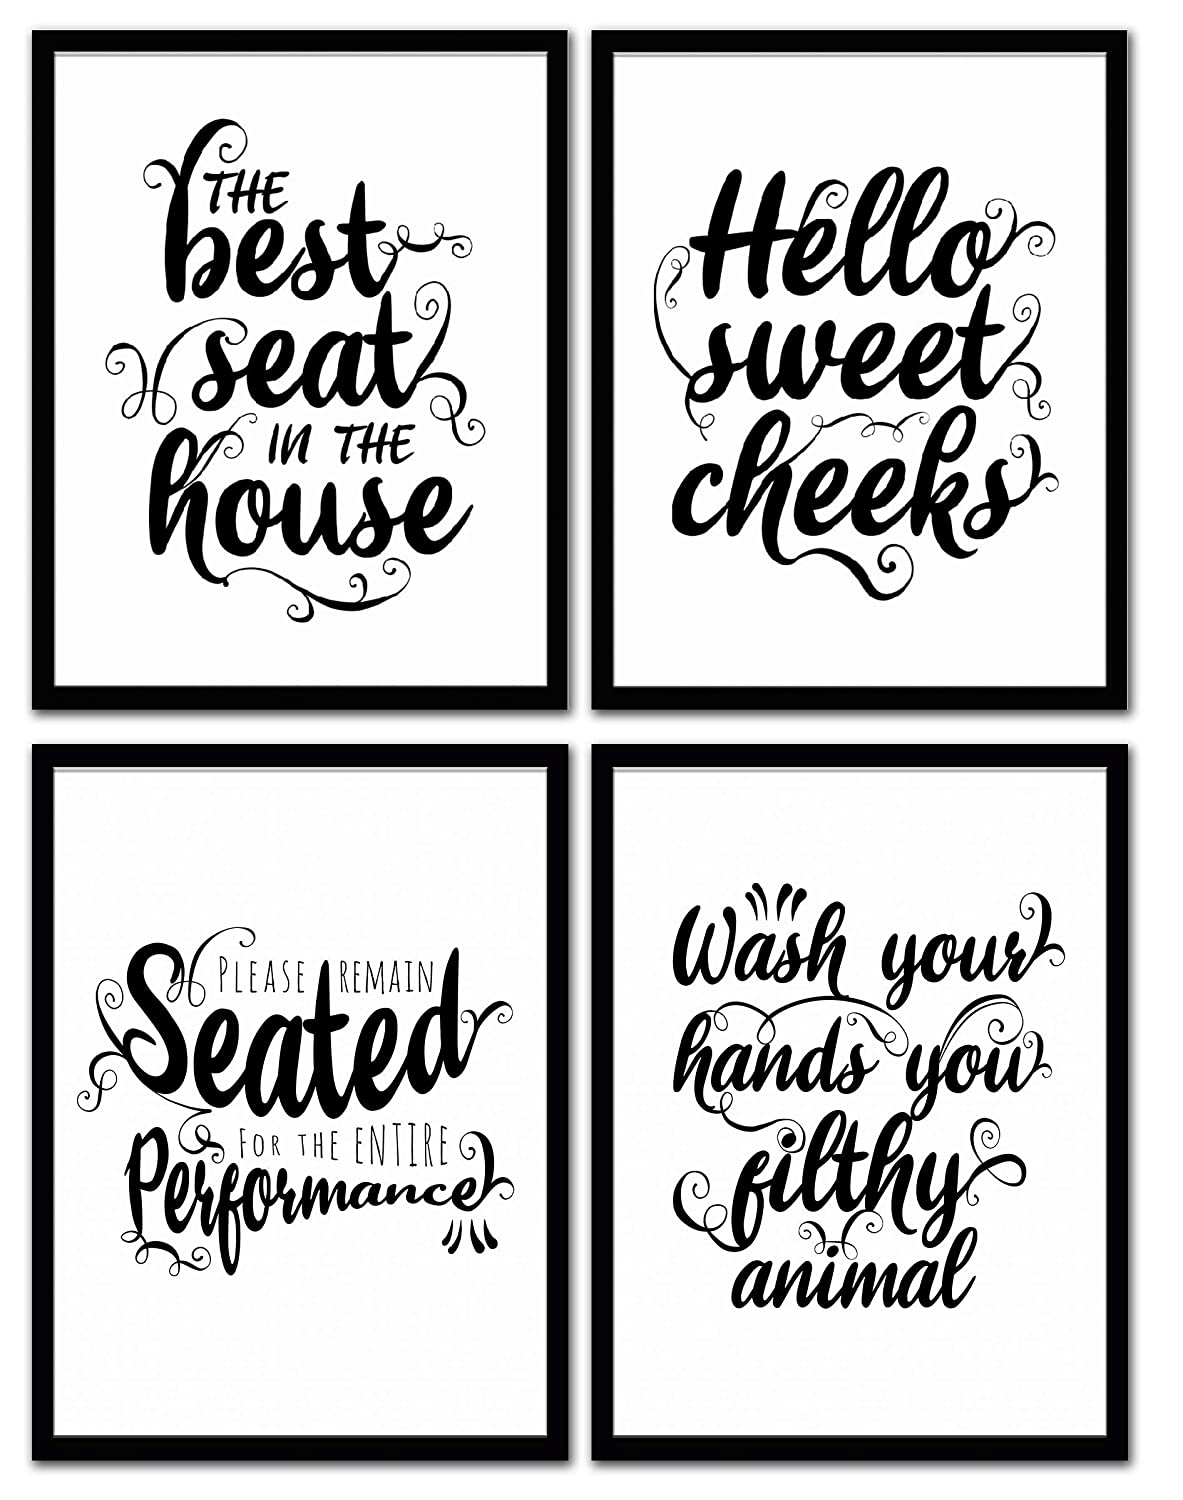 Funny bathroom signs for home decor set of 4 6 designs available these unframed bathroom wall art quotes have photo lab quality great for